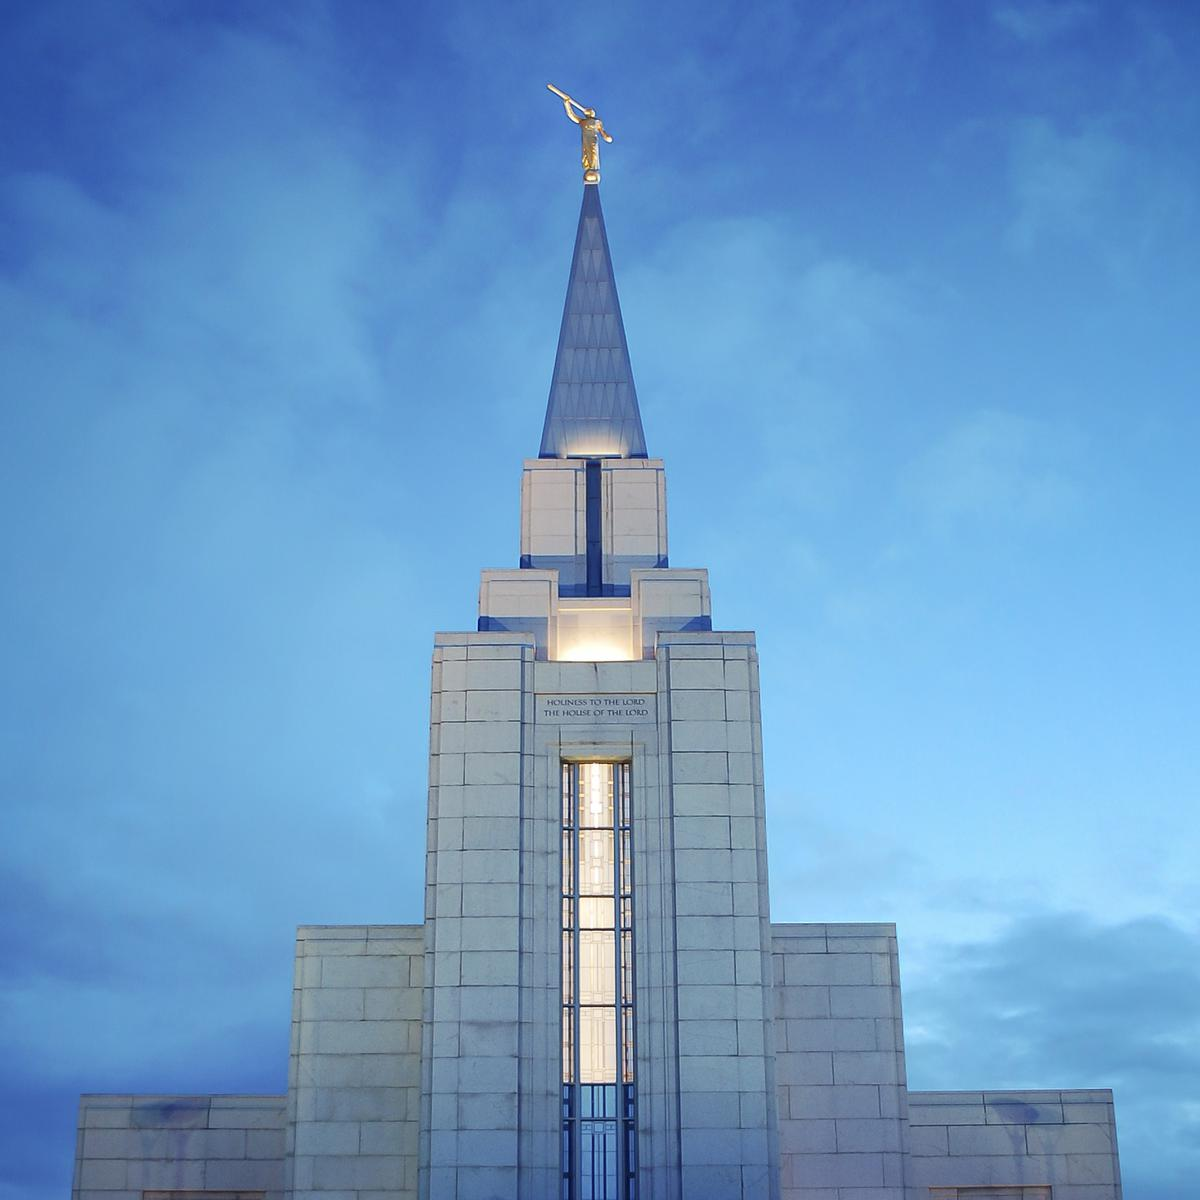 Image of the Vancouver Mormon Temple in British Columbia, Canada